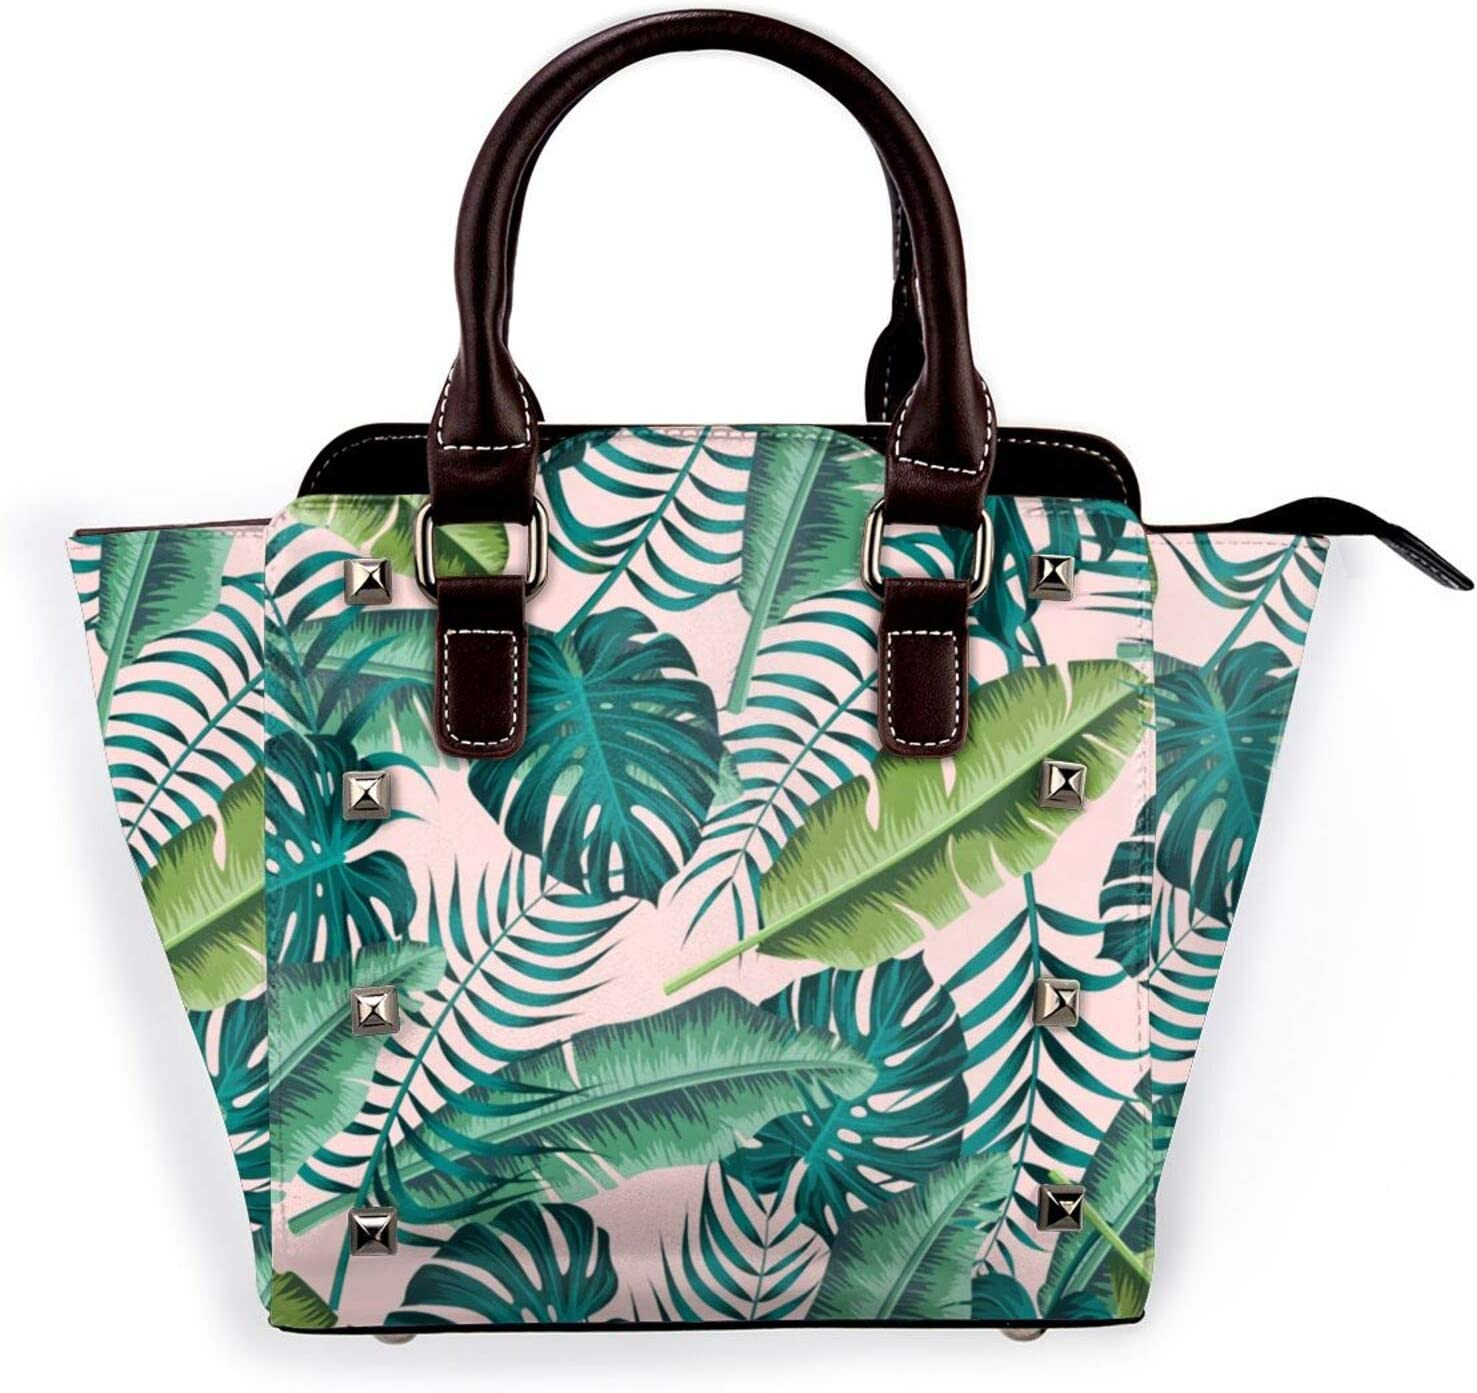 Tote Bag Tropical Max 73% OFF Leaves Pattern Non-Fad 3D 67% OFF of fixed price Printed Shoulder